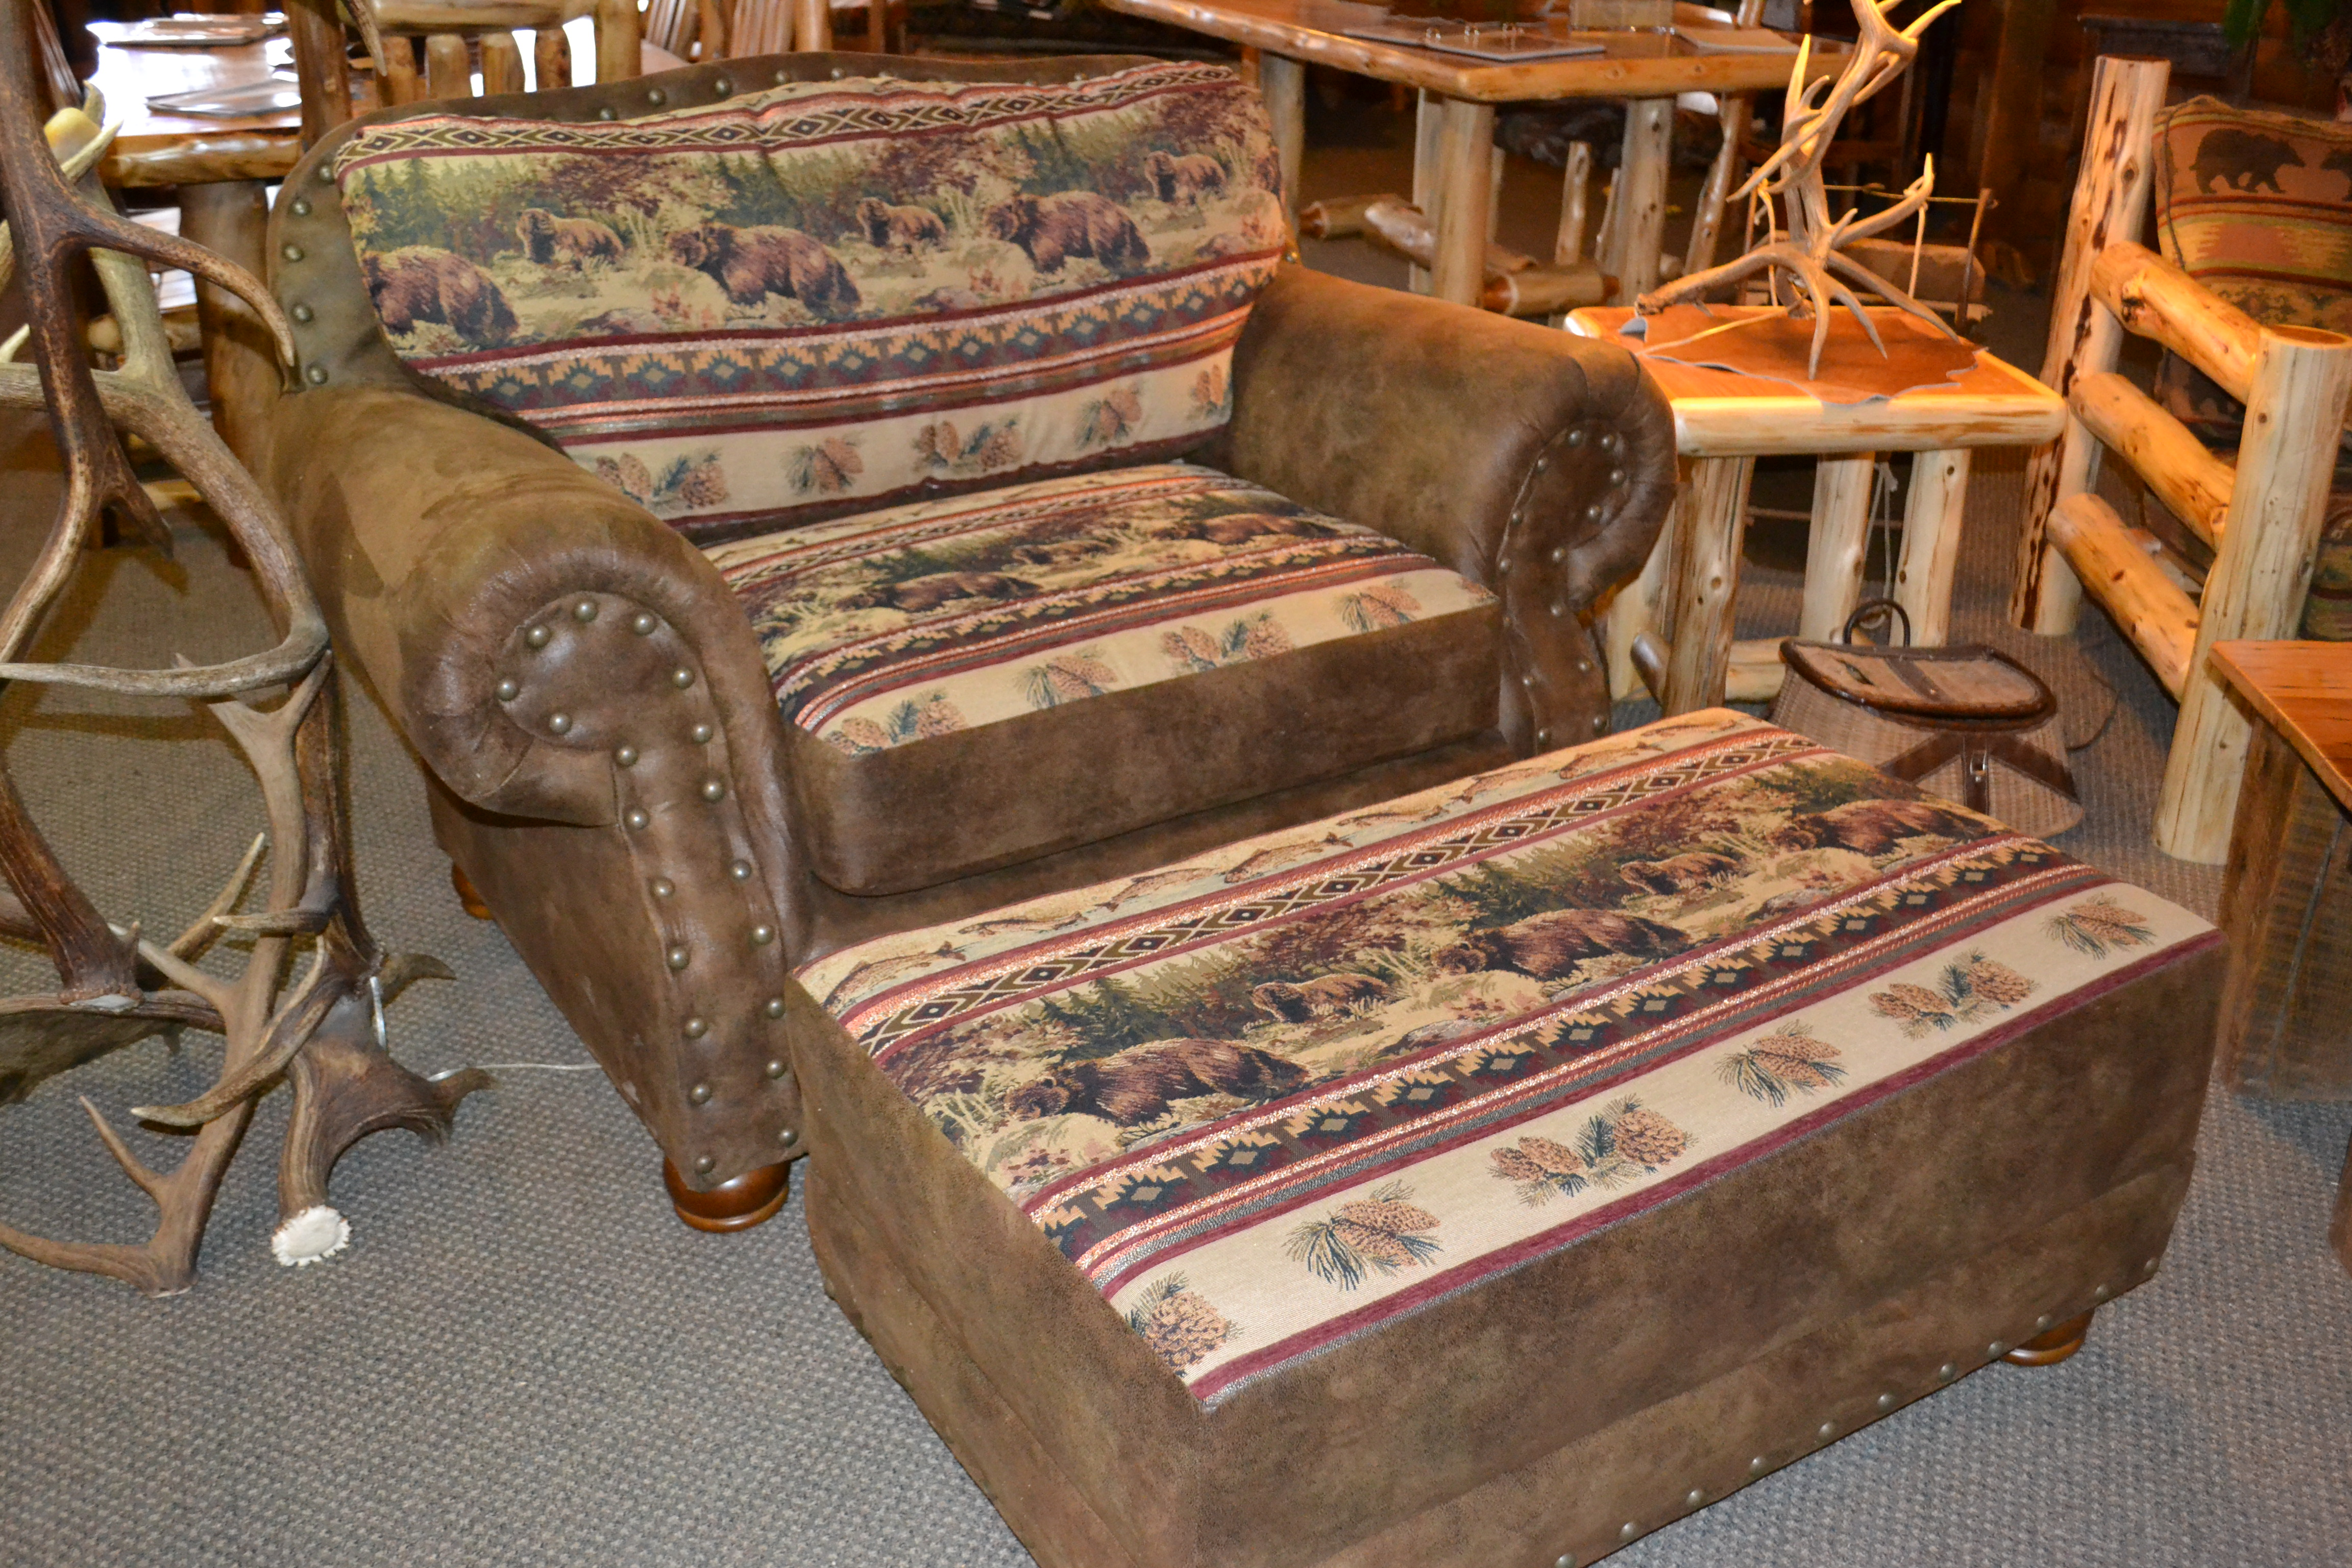 Bear Creek Chair Amp Half Rustic Furniture Mall By